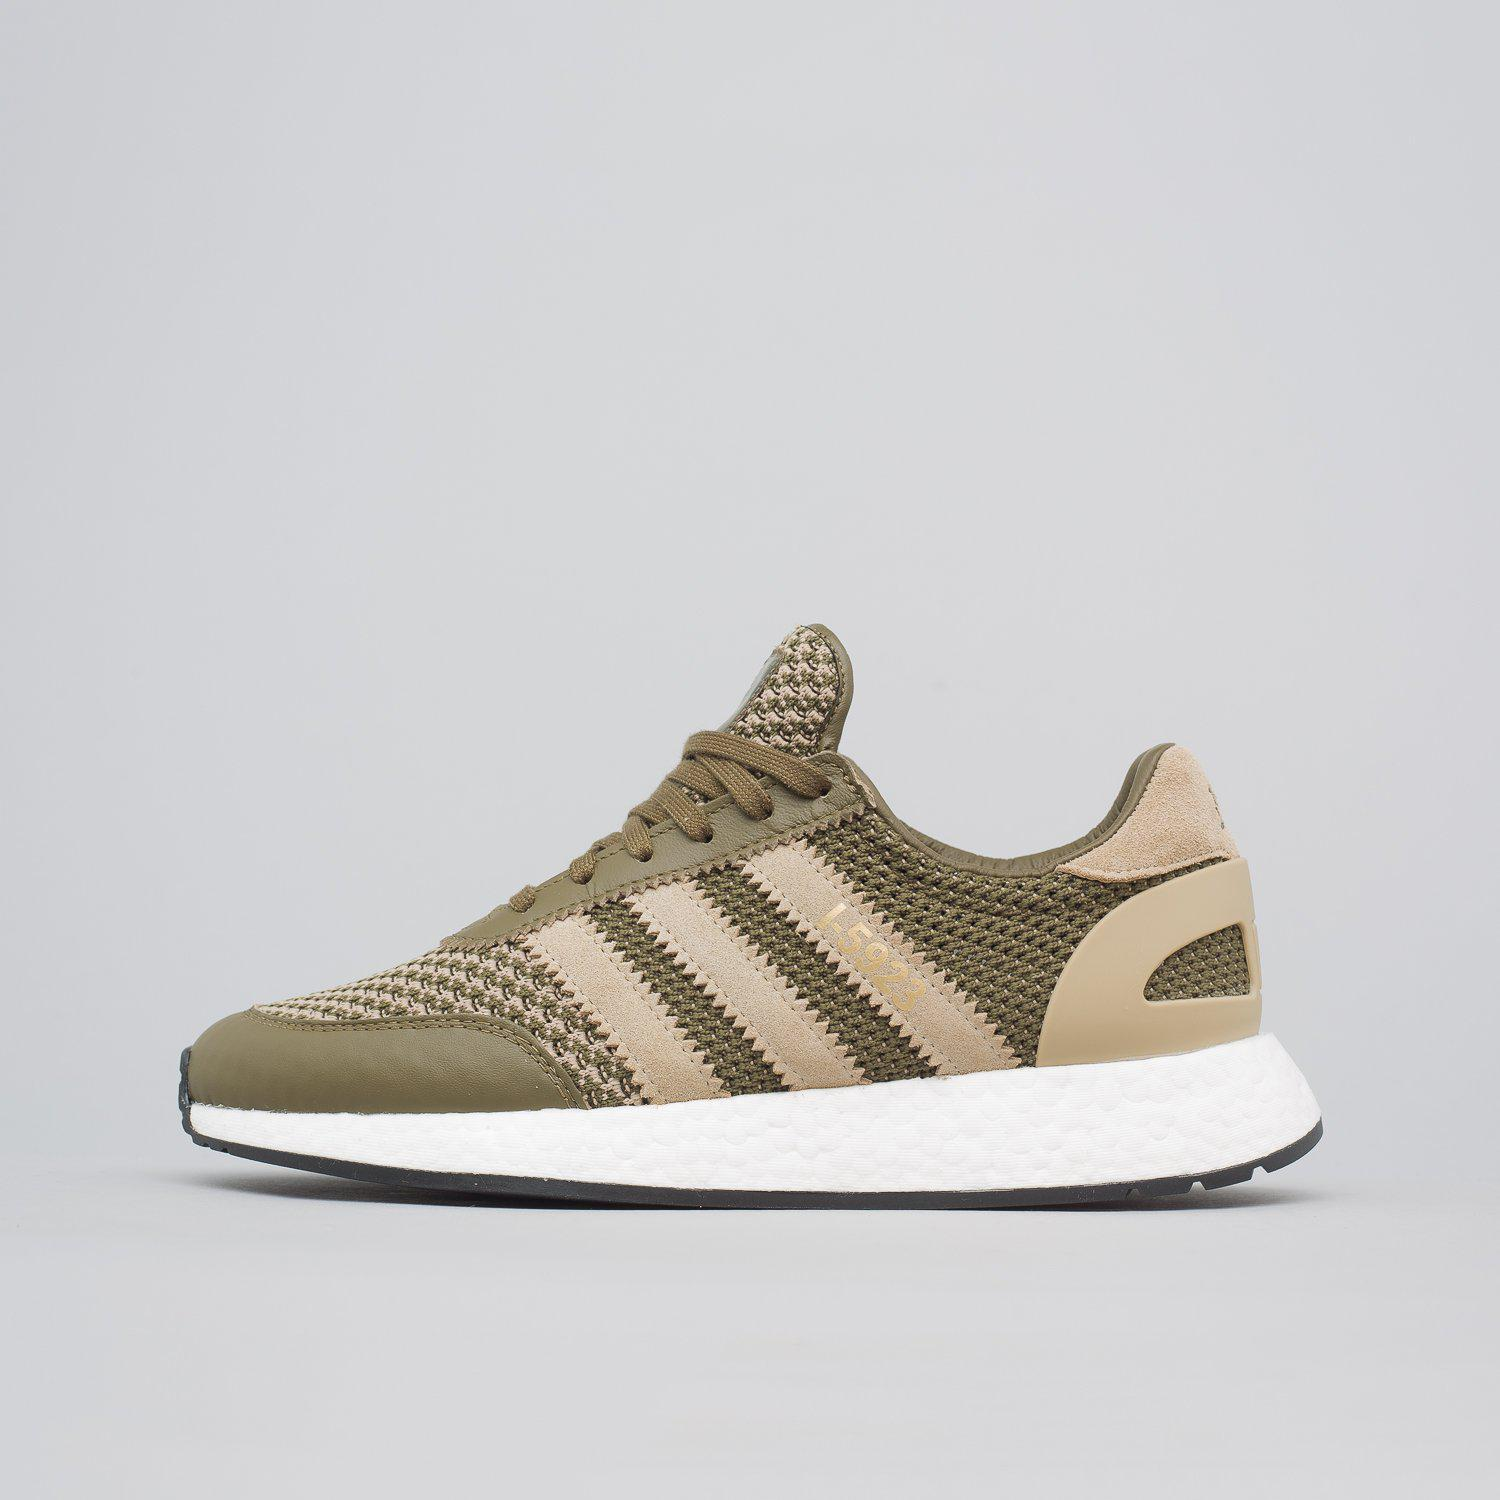 73a48dbff60d Lyst - adidas X Neighborhood I-5923 In Olive in Green for Men